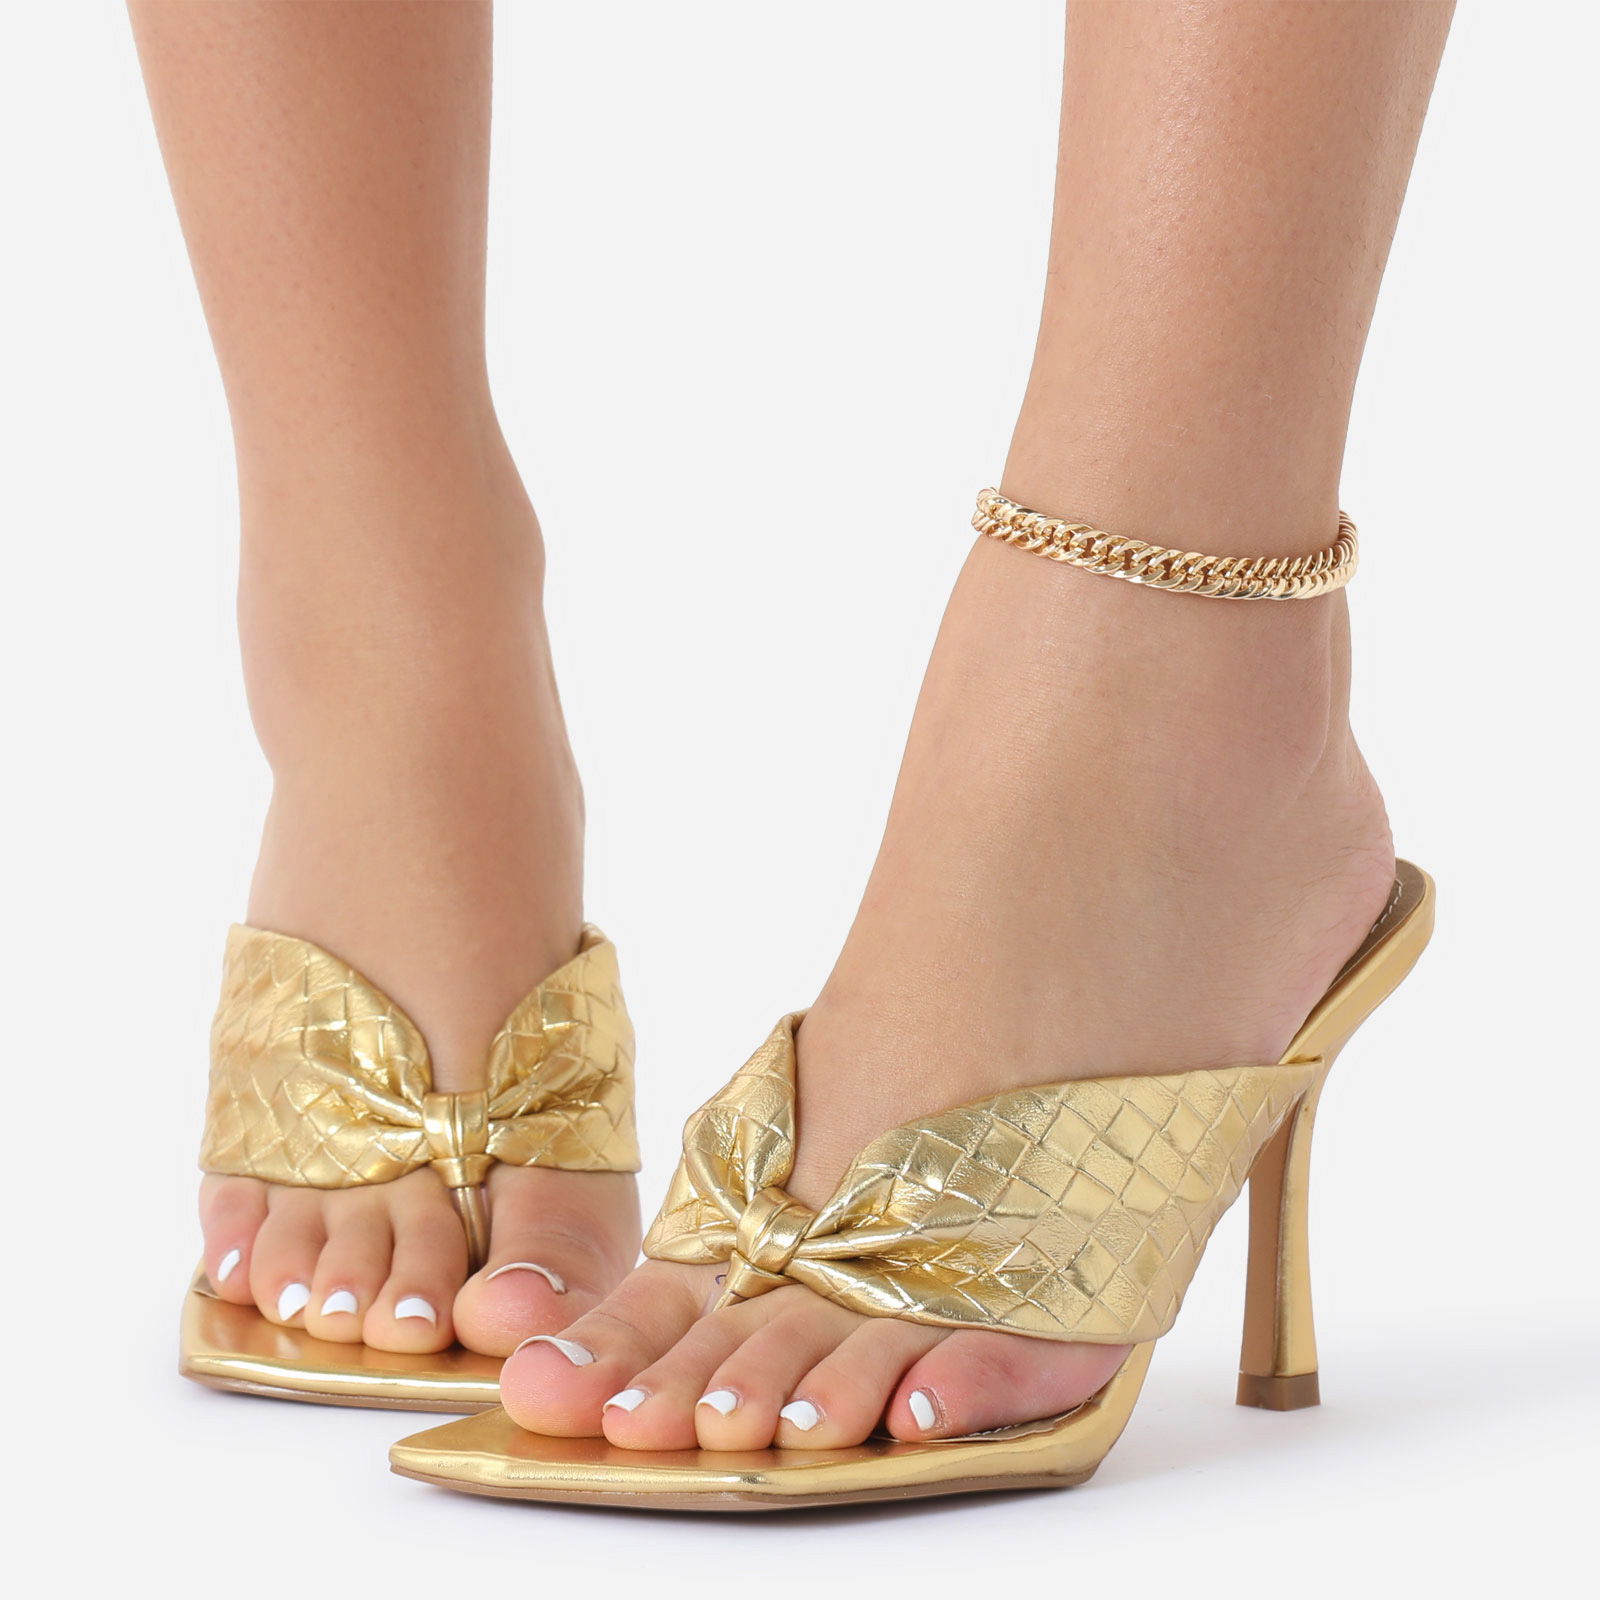 Delicate Chain Anklet In Gold